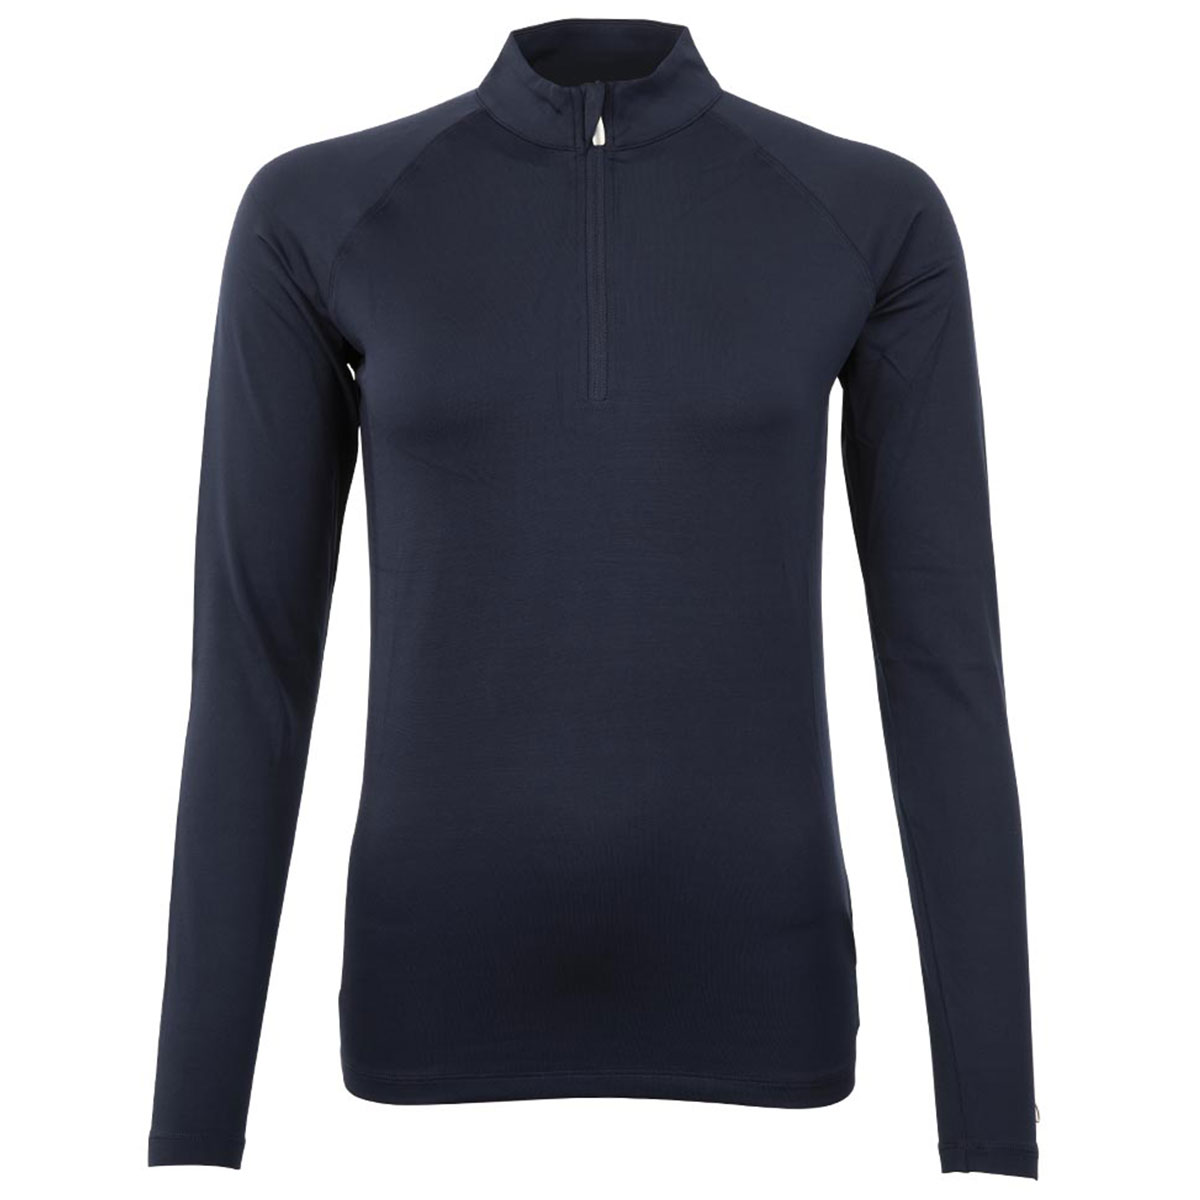 BR Event pully donkerblauw maat:s